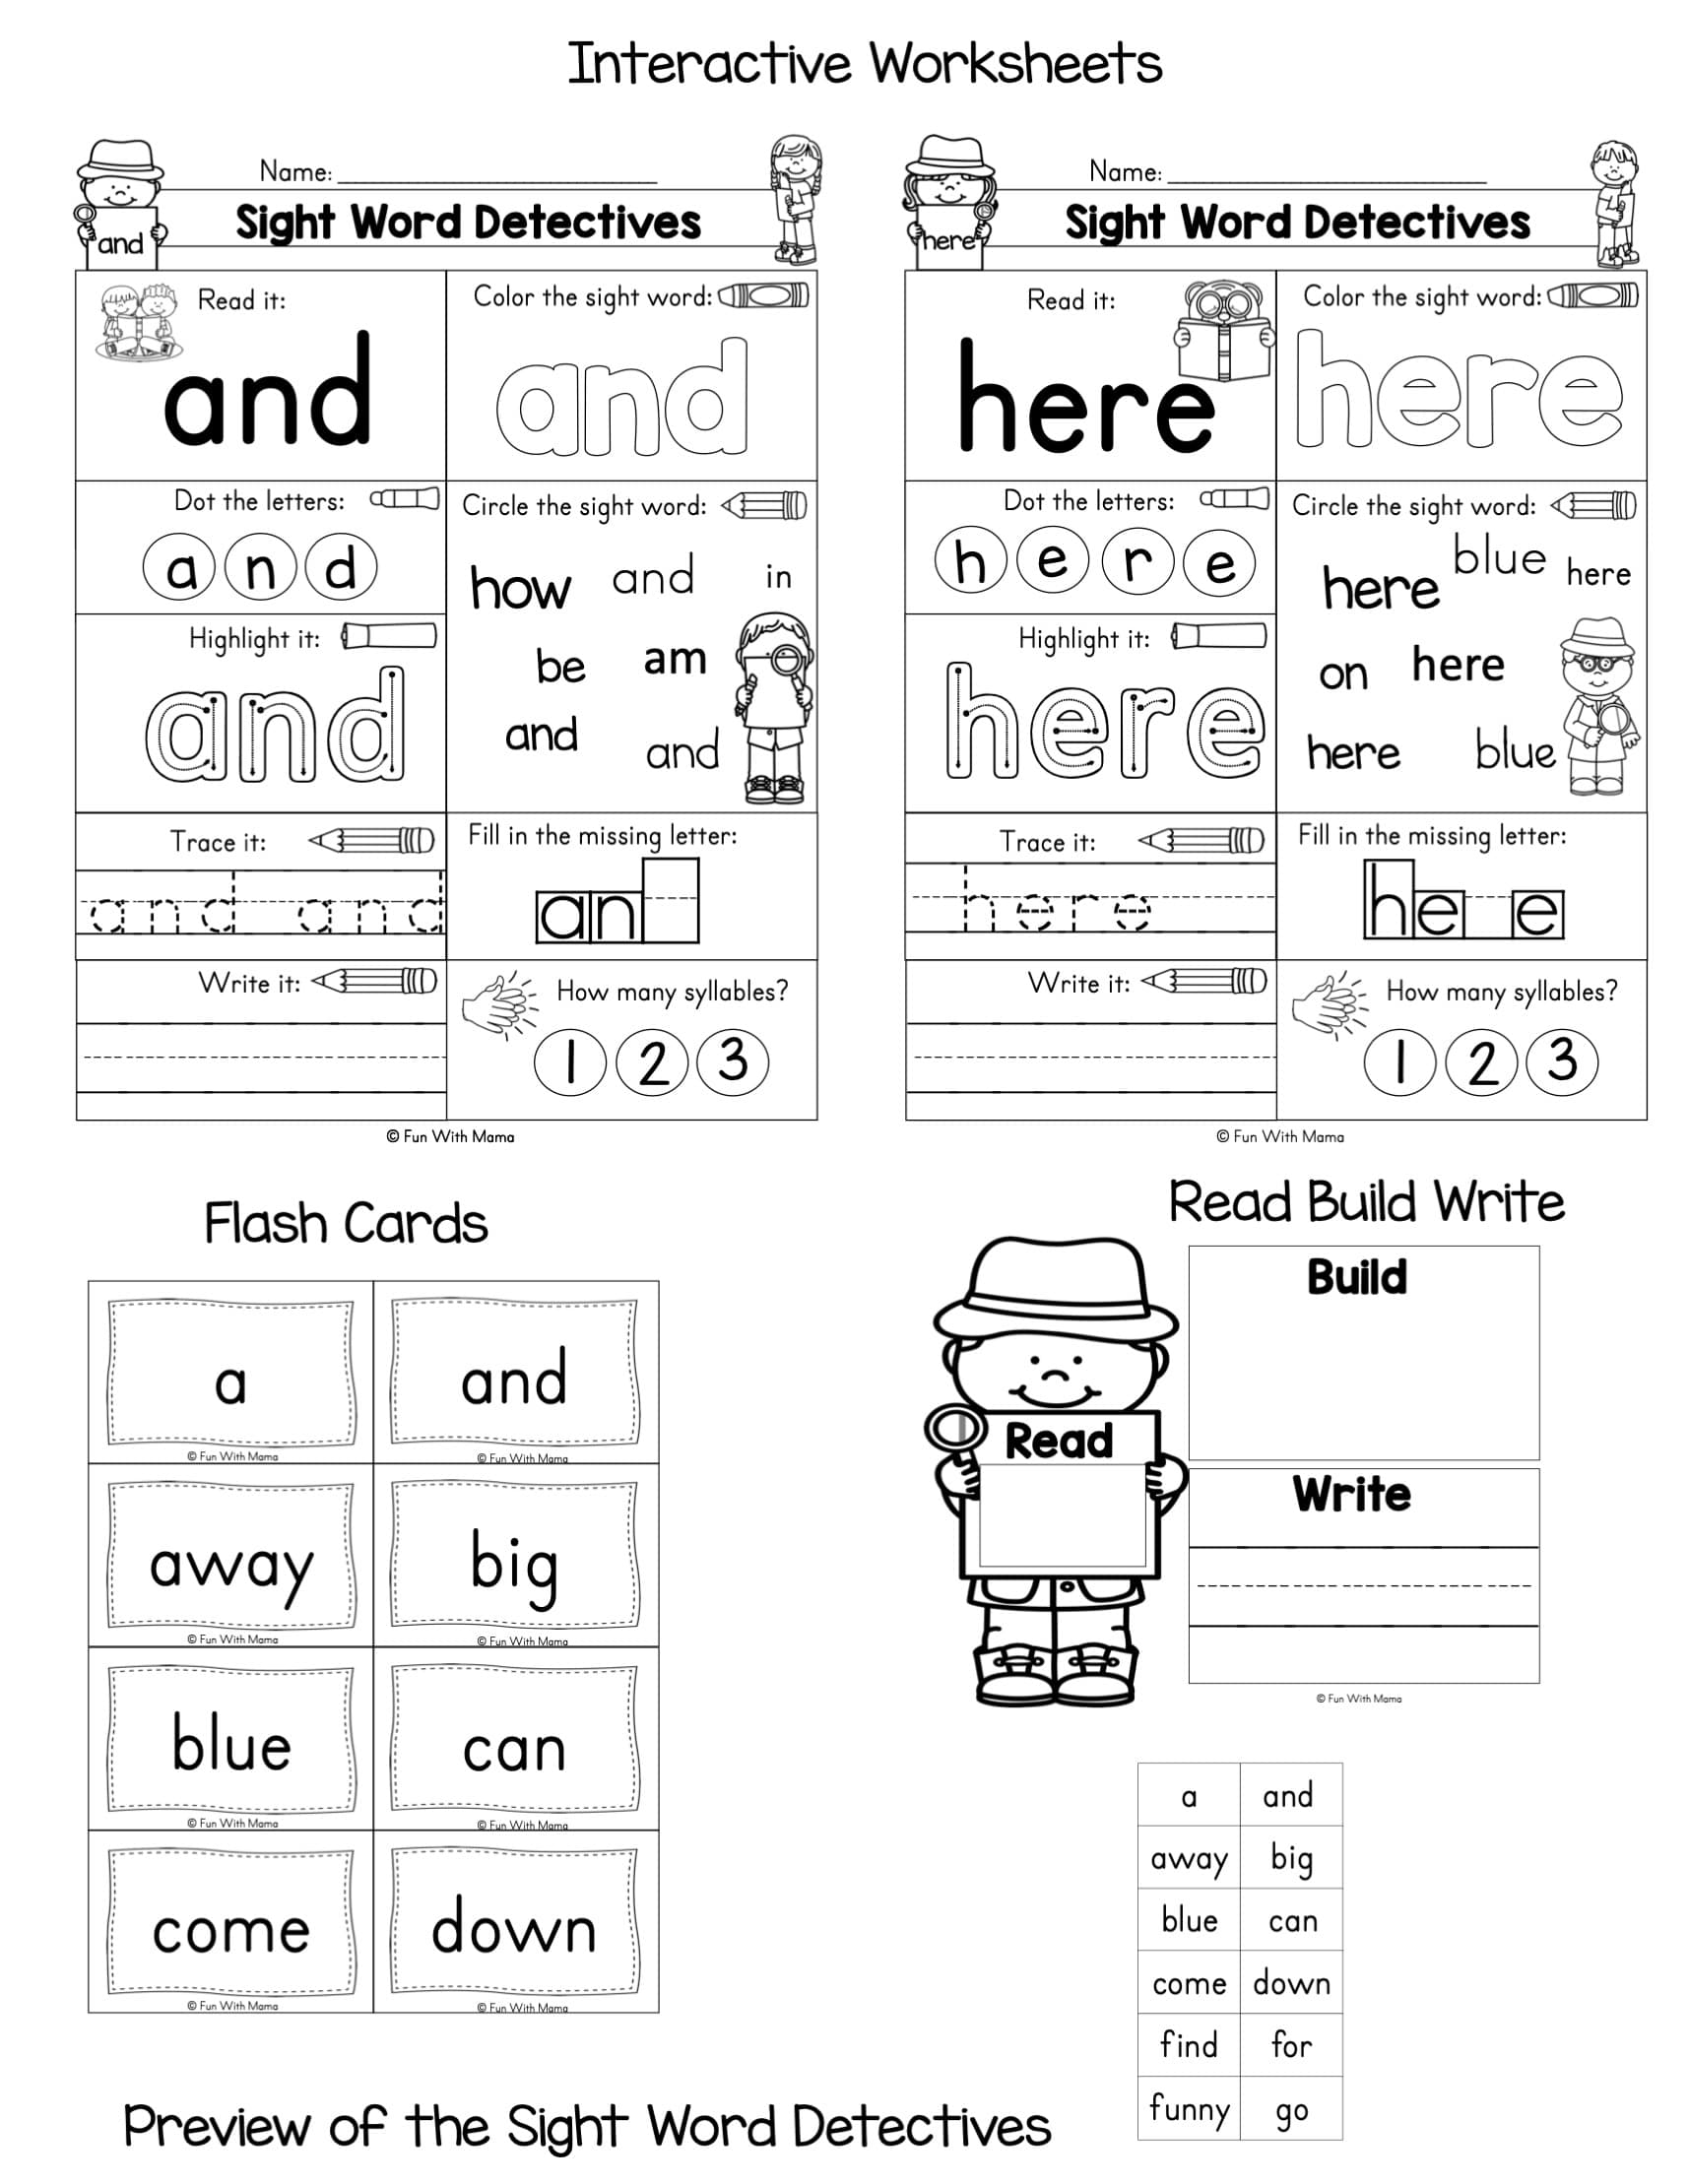 - Sight Word Worksheets- Dolch Pre-primer Sight Word Detectives